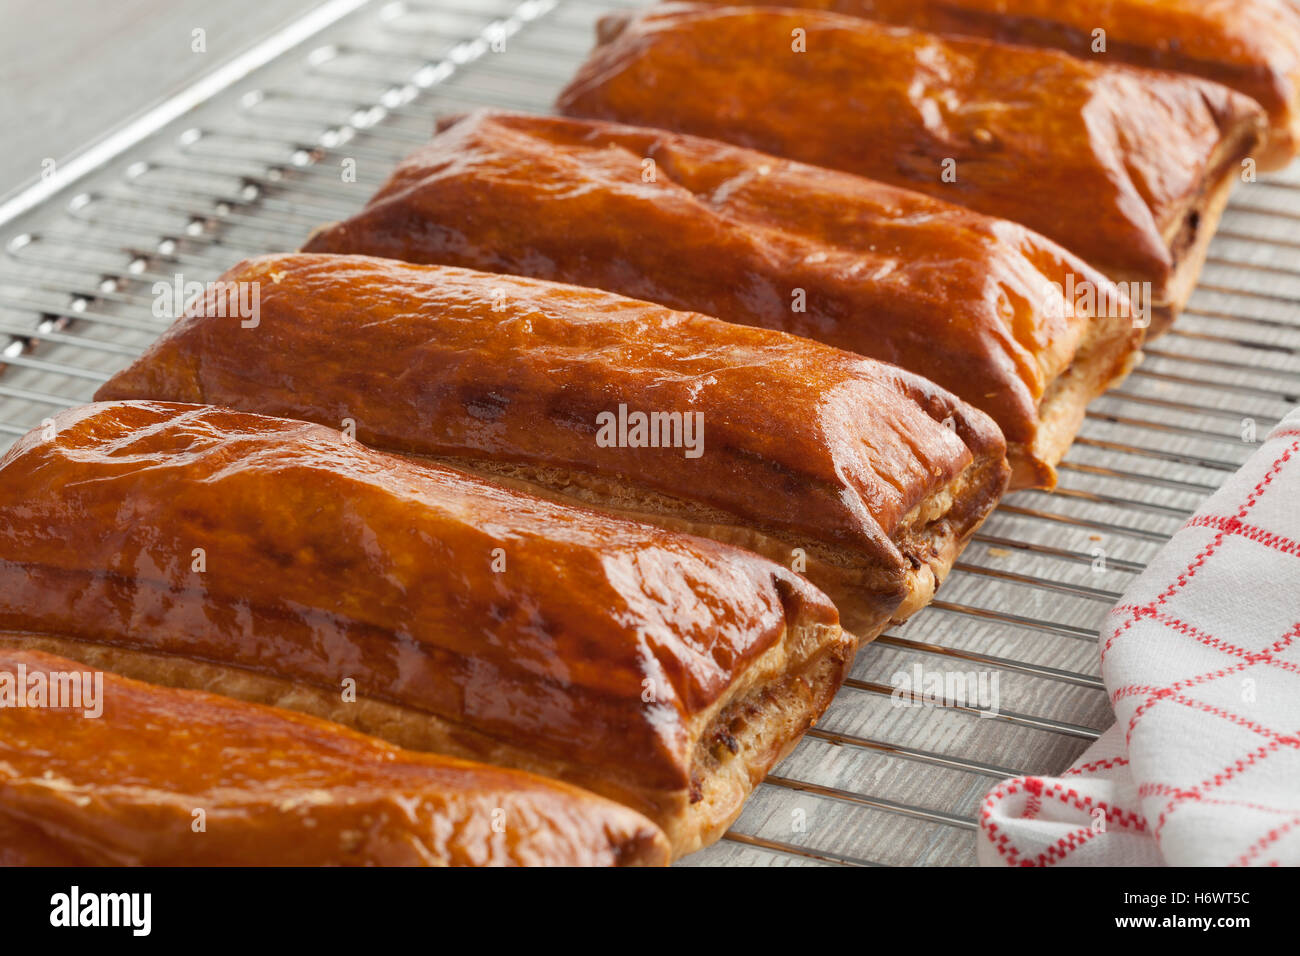 Fresh baked sausage rolls out of the oven - Stock Image